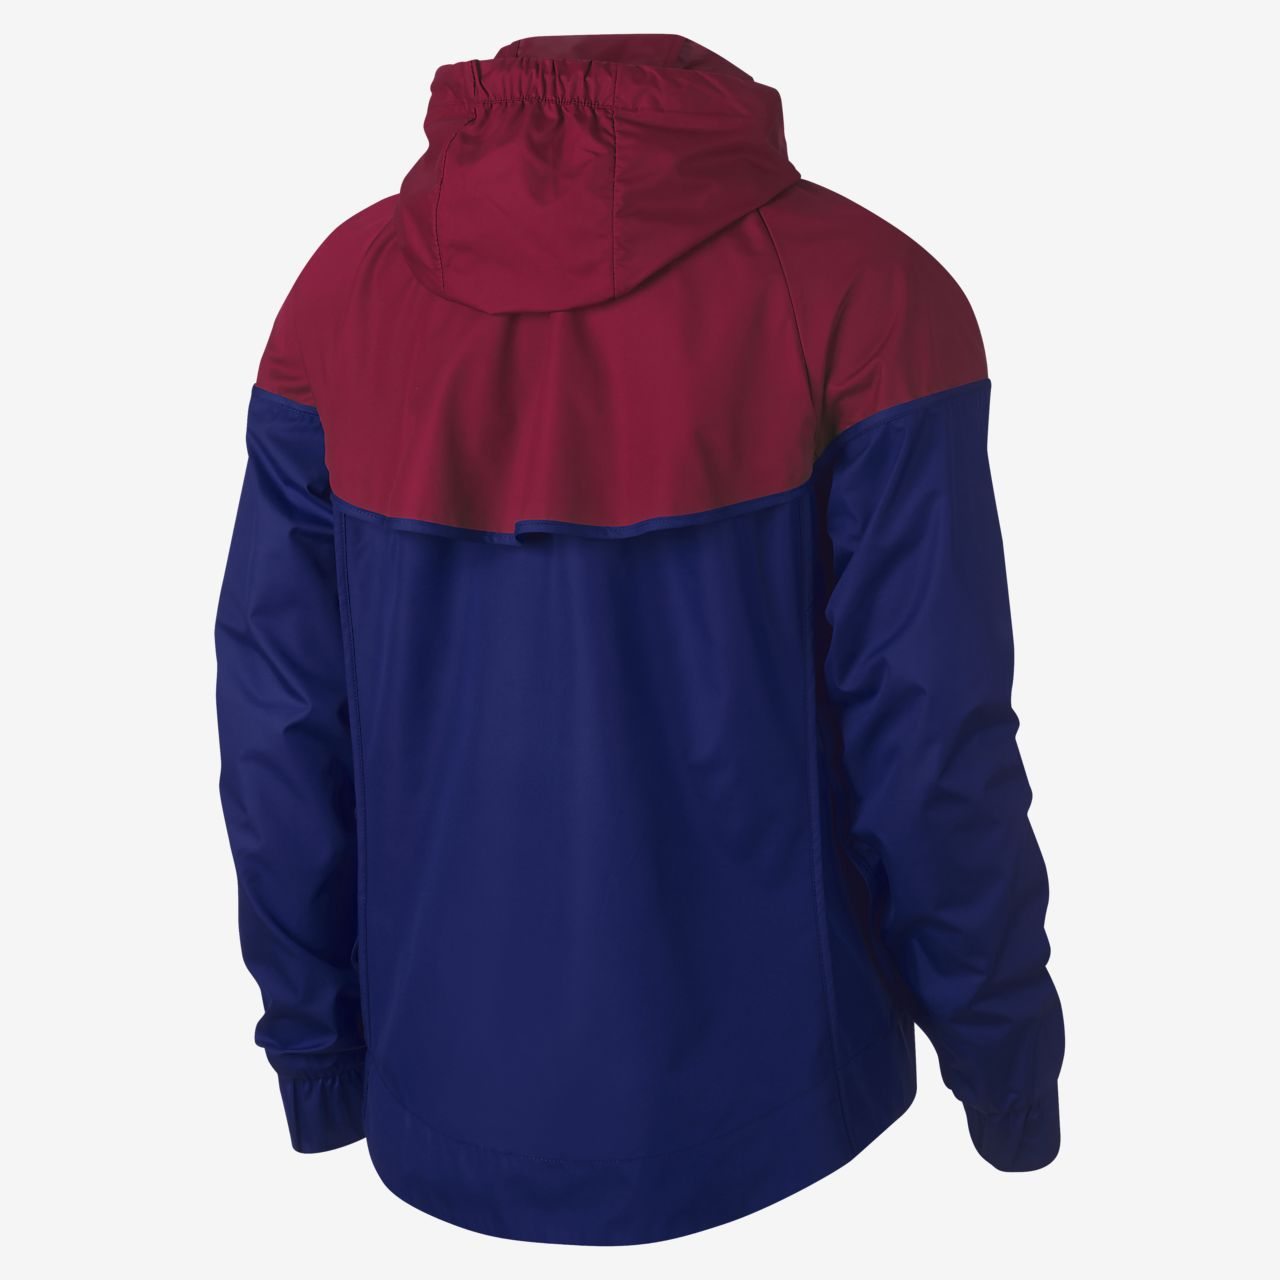 194564f3a17 Low Resolution FC Barcelona Windrunner Women s Jacket FC Barcelona  Windrunner Women s Jacket